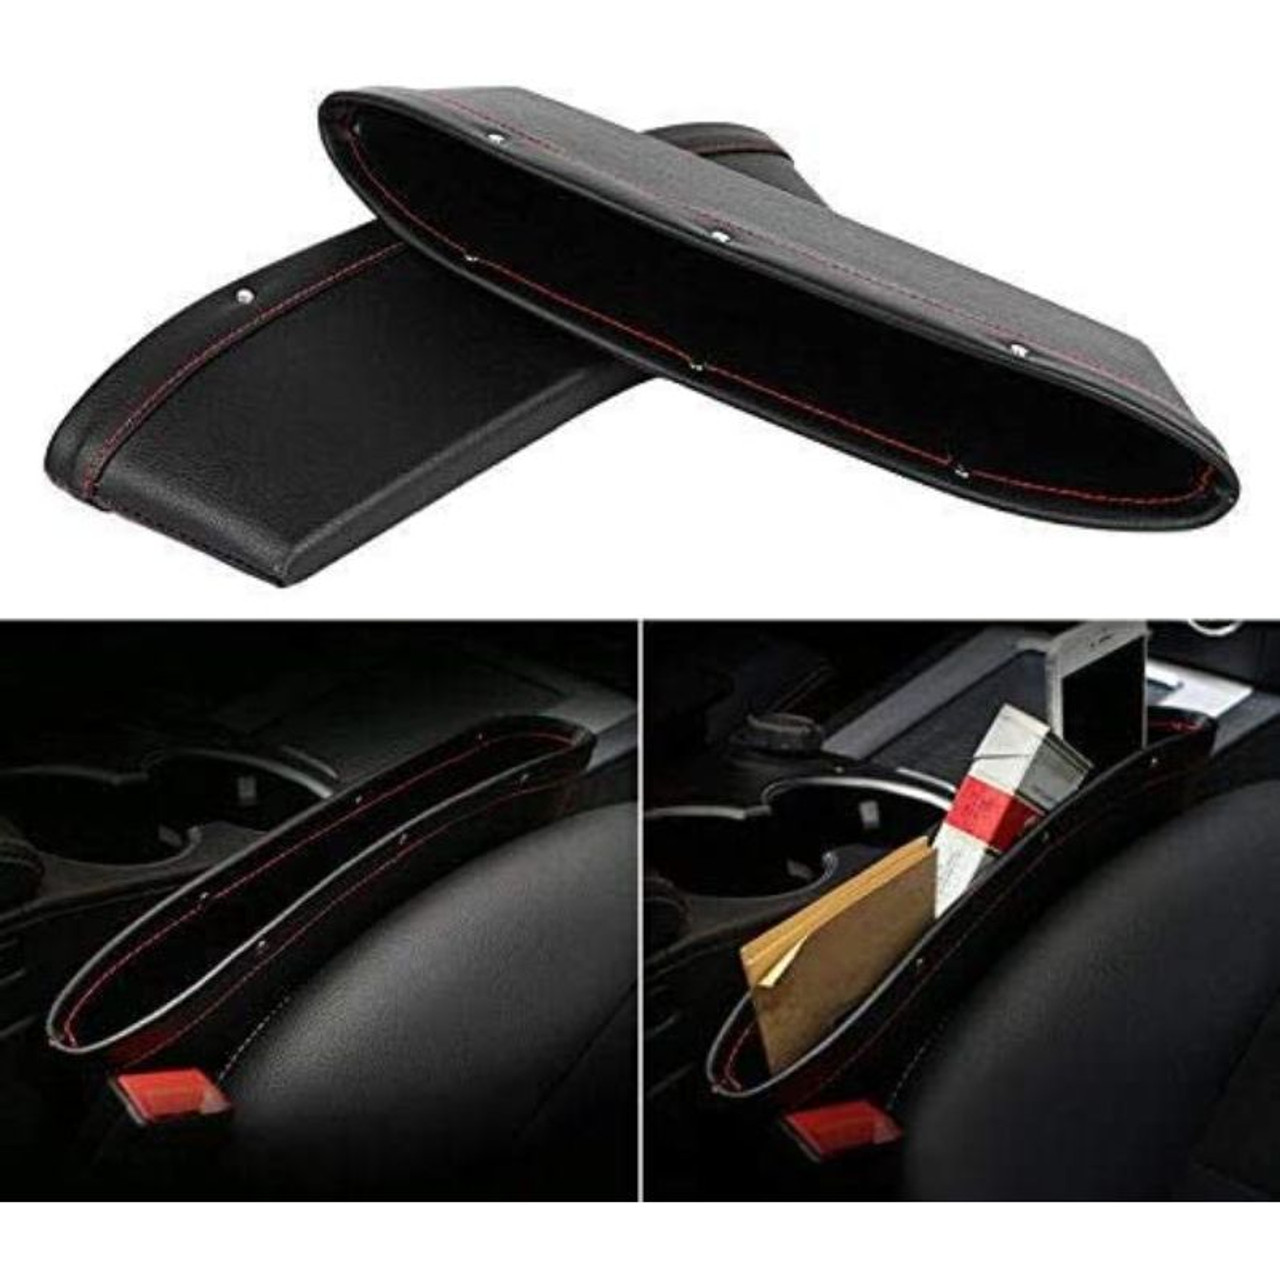 Leather Car Seat Organizer for Phones, Sunglasses, or Keys - 2 Pack